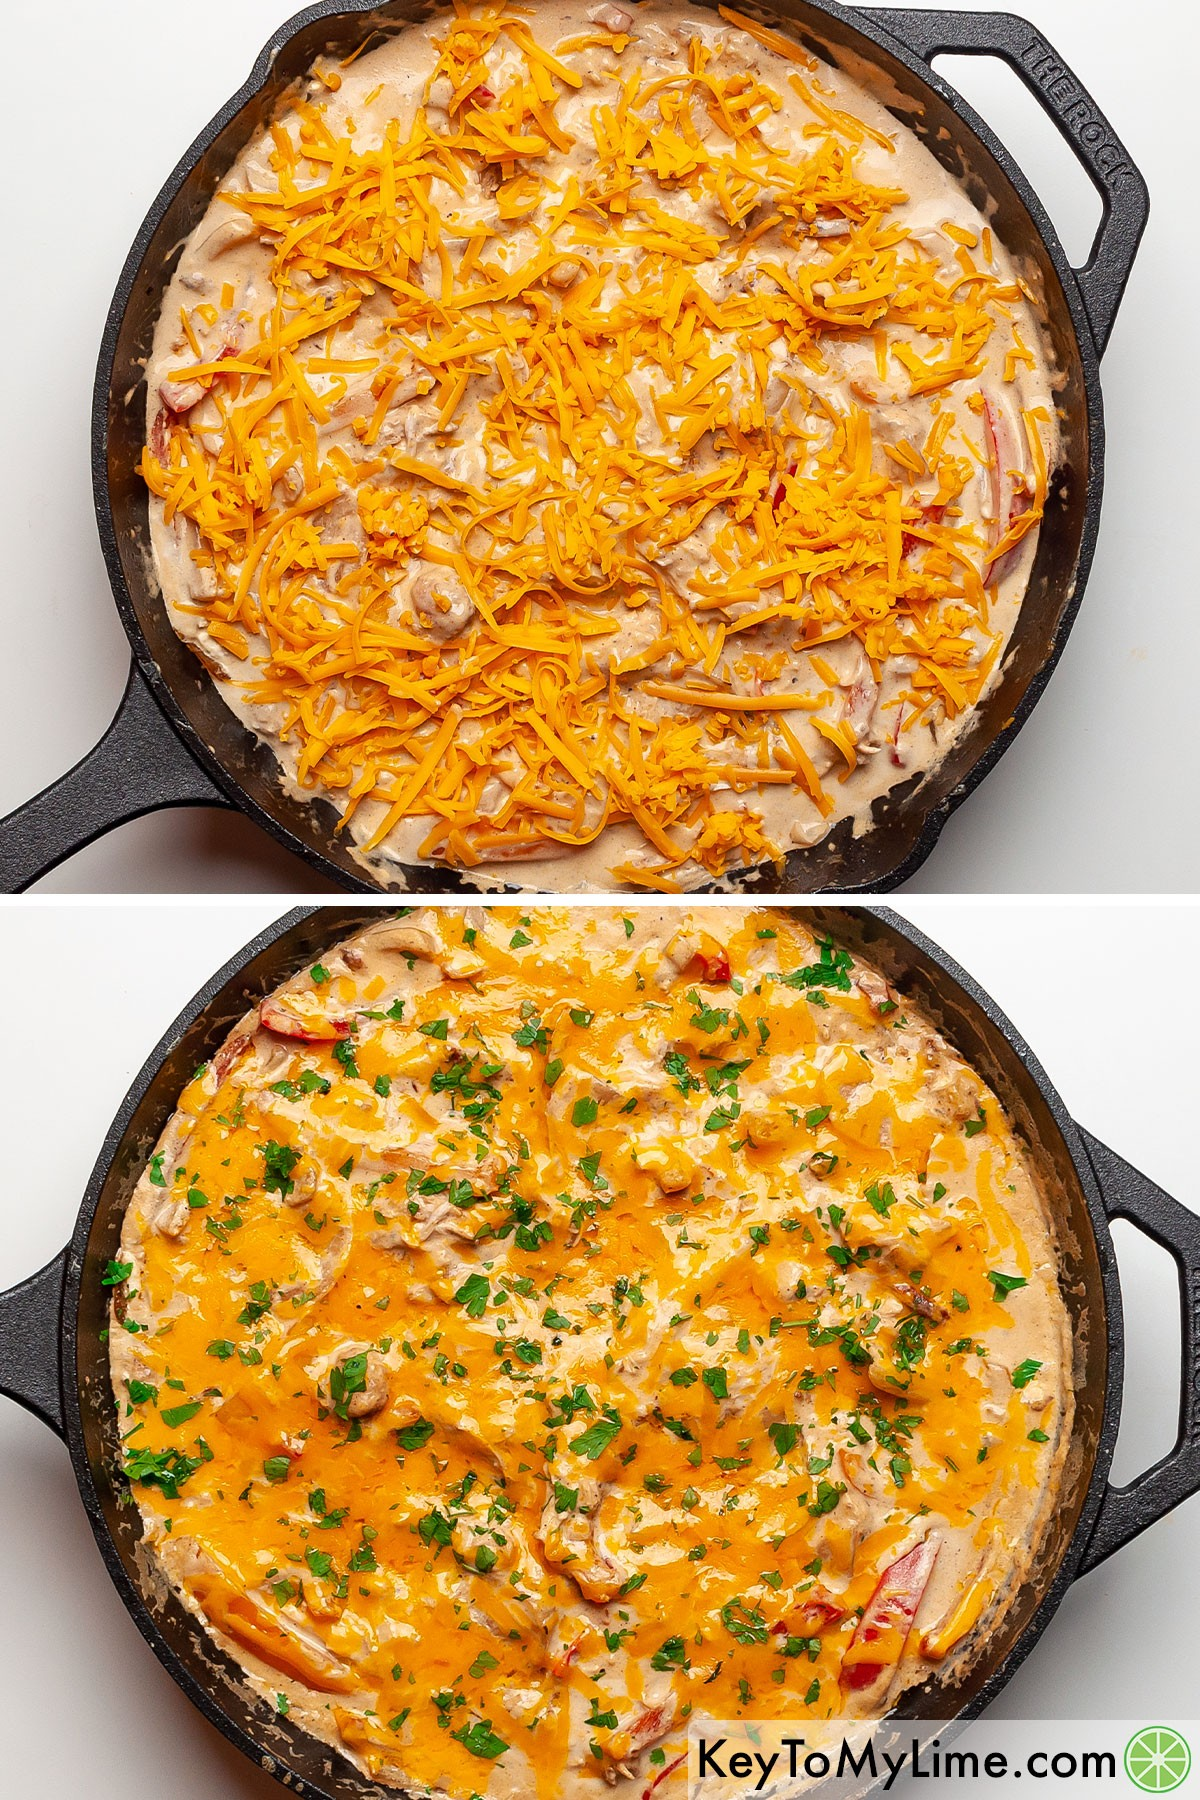 A process collage of melting cheddar cheese on top of fiesta chicken.